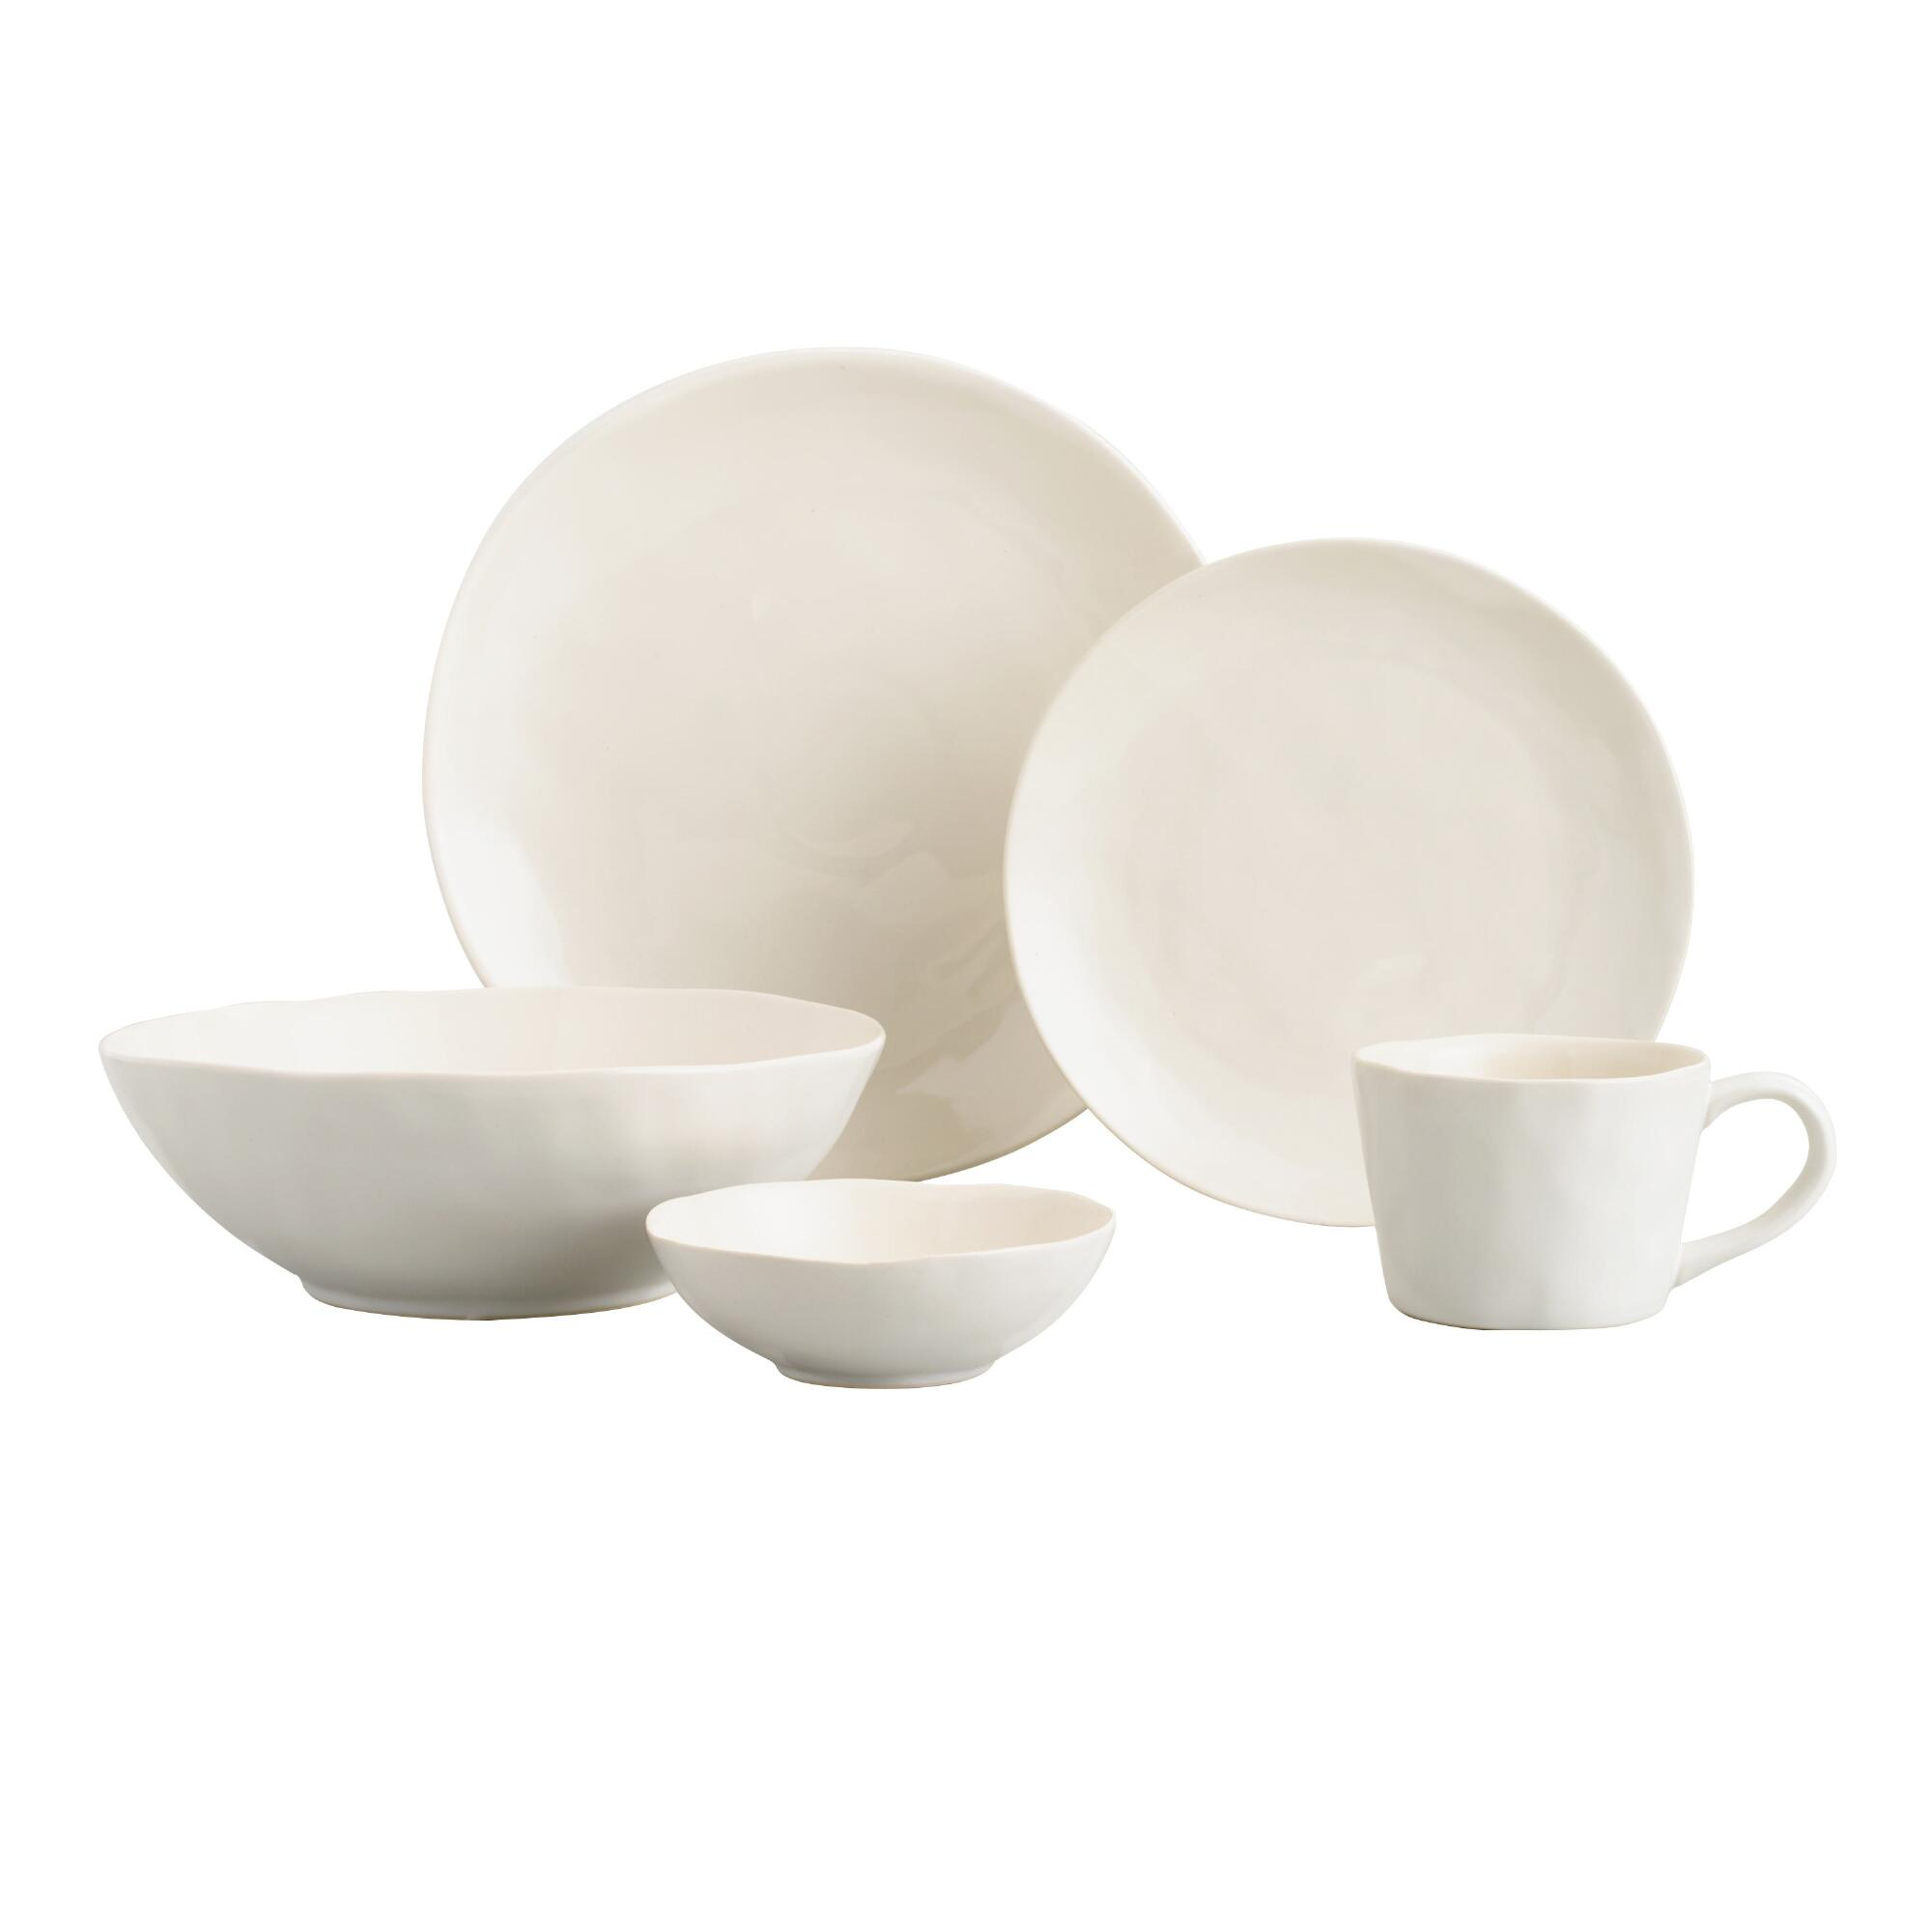 Ivory Element Stoneware Collection by World Market